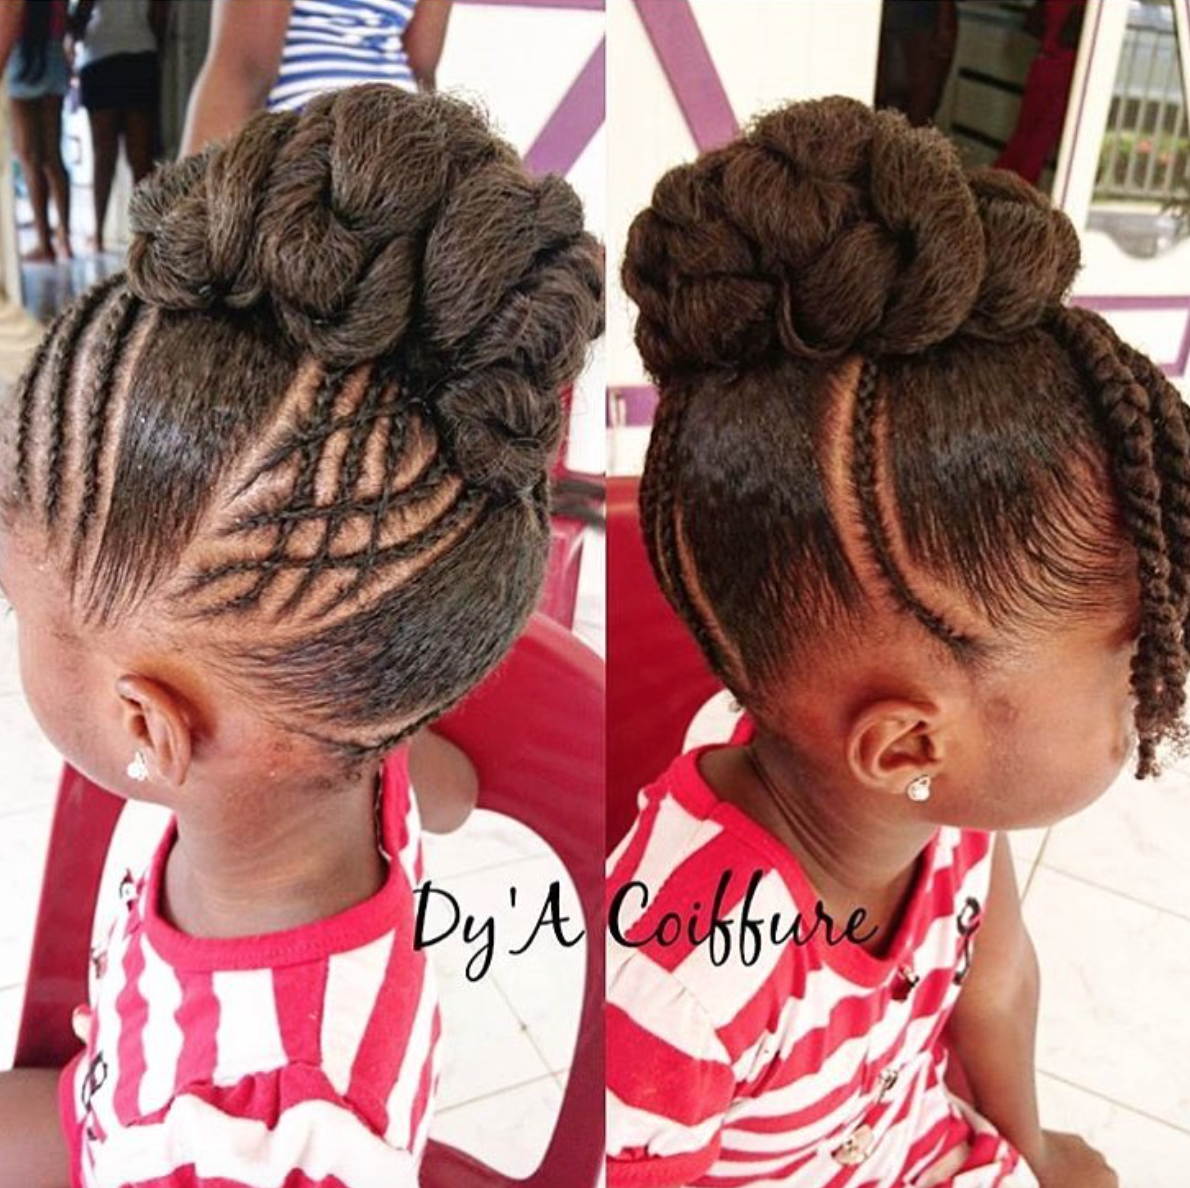 Adorable Updo By Dyacoiffure Https Blackhairinformation Com Hairstyle Gallery Adorable Updo D Natural Hair Styles Kids Hairstyles Girls Natural Hairstyles